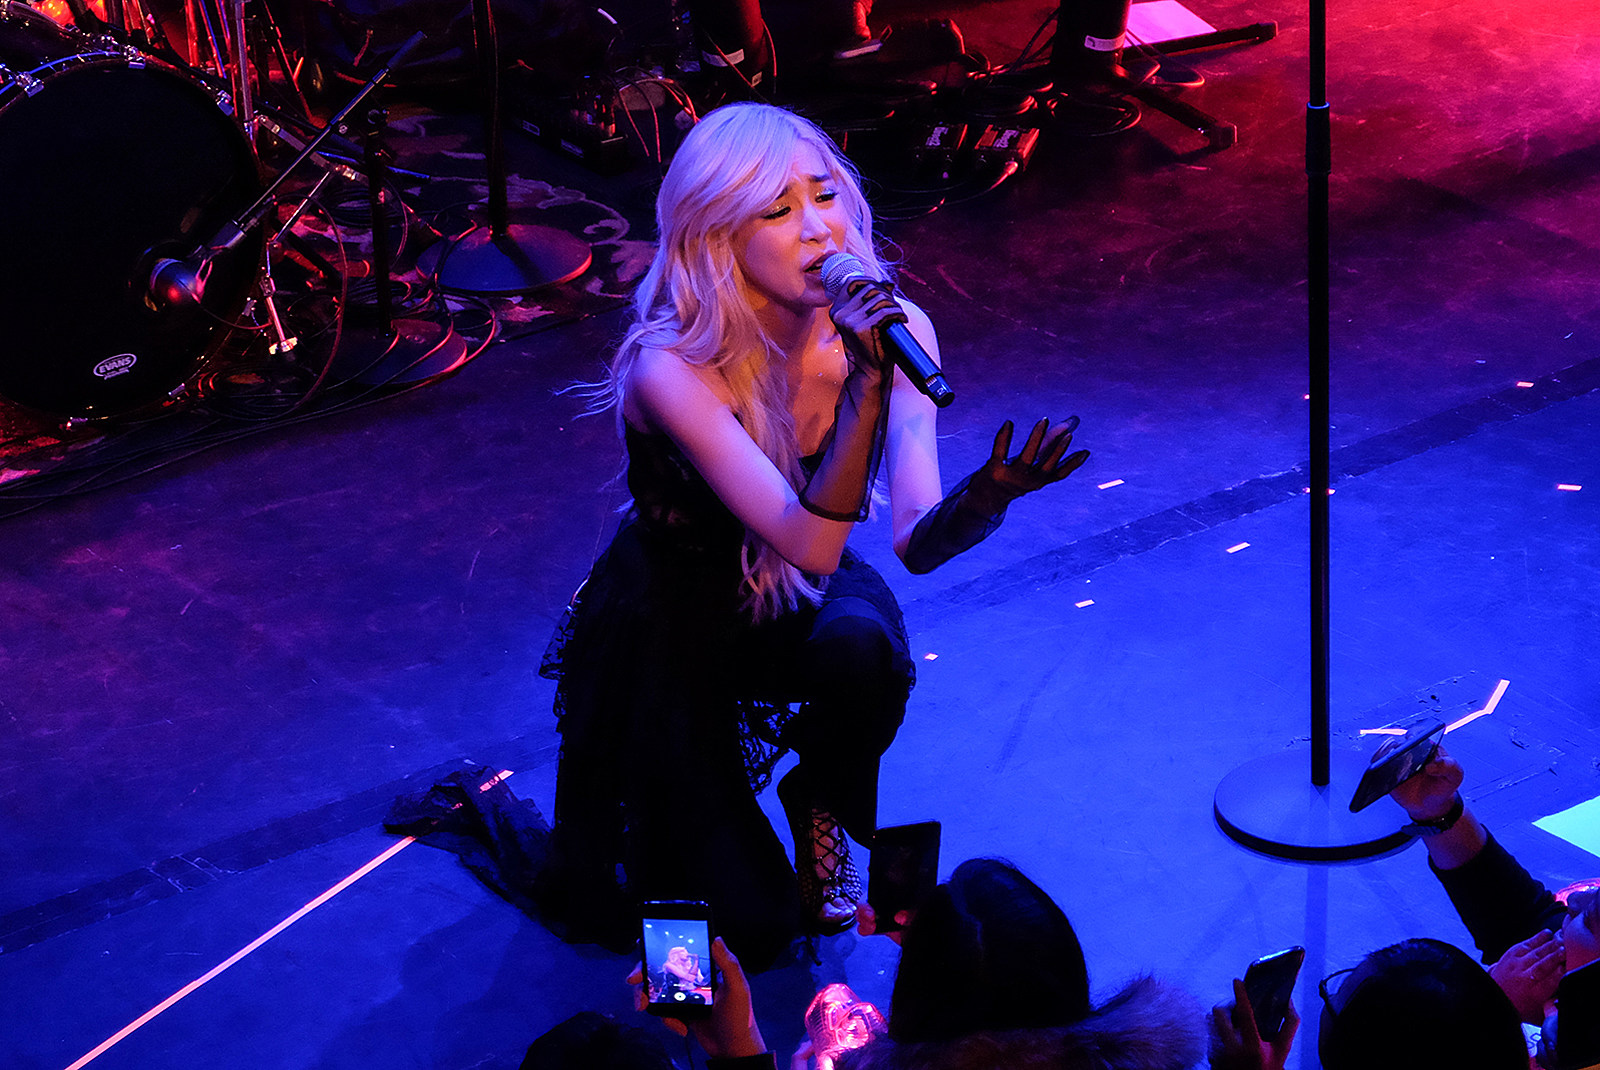 888d6aa8e8f Tiffany Young Lips on Lips Tour Review (NYC March 6)